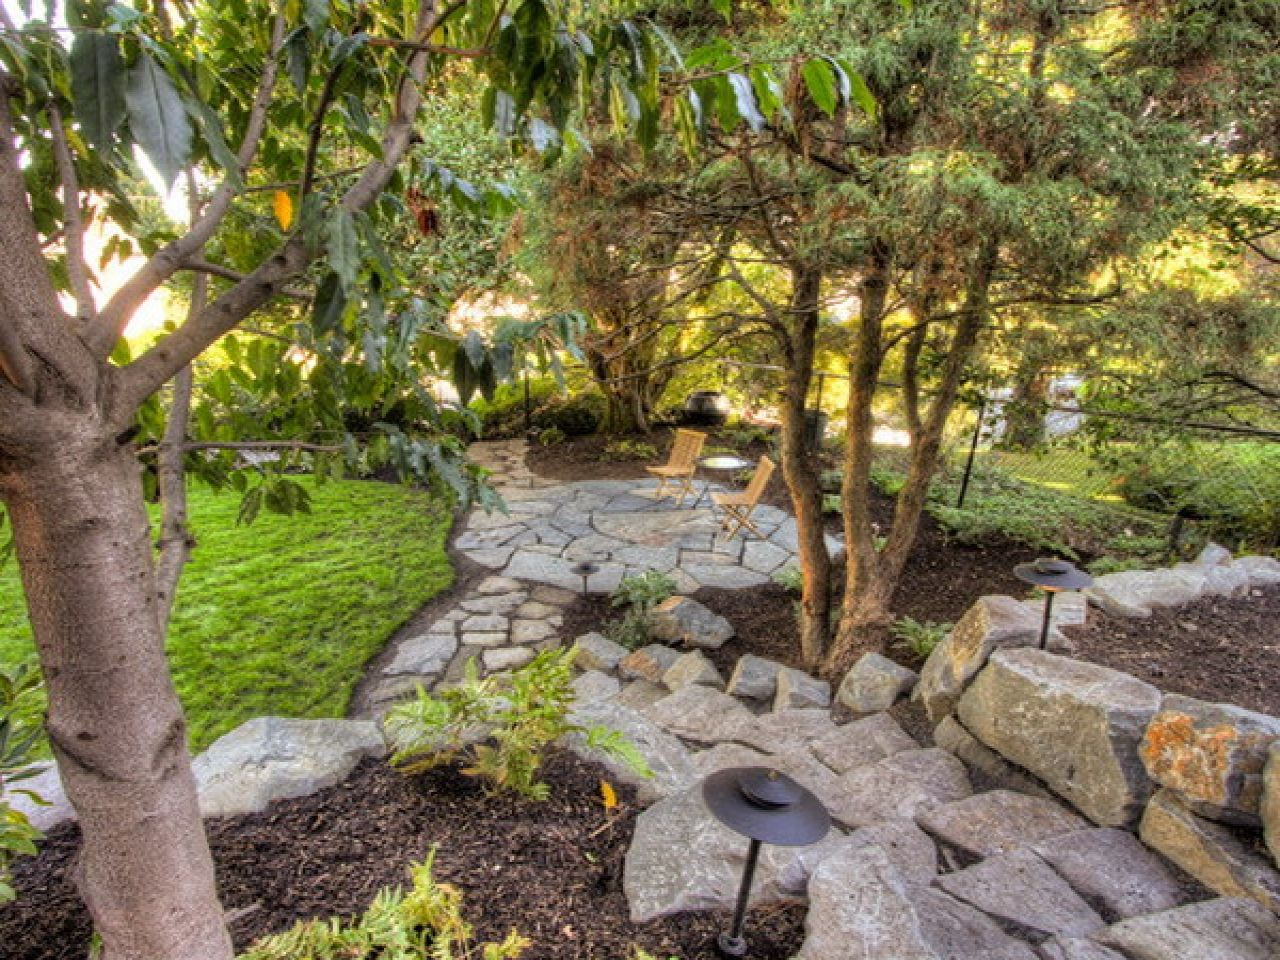 Landscaping Under Pine Trees and Deer | Landscaping with ...